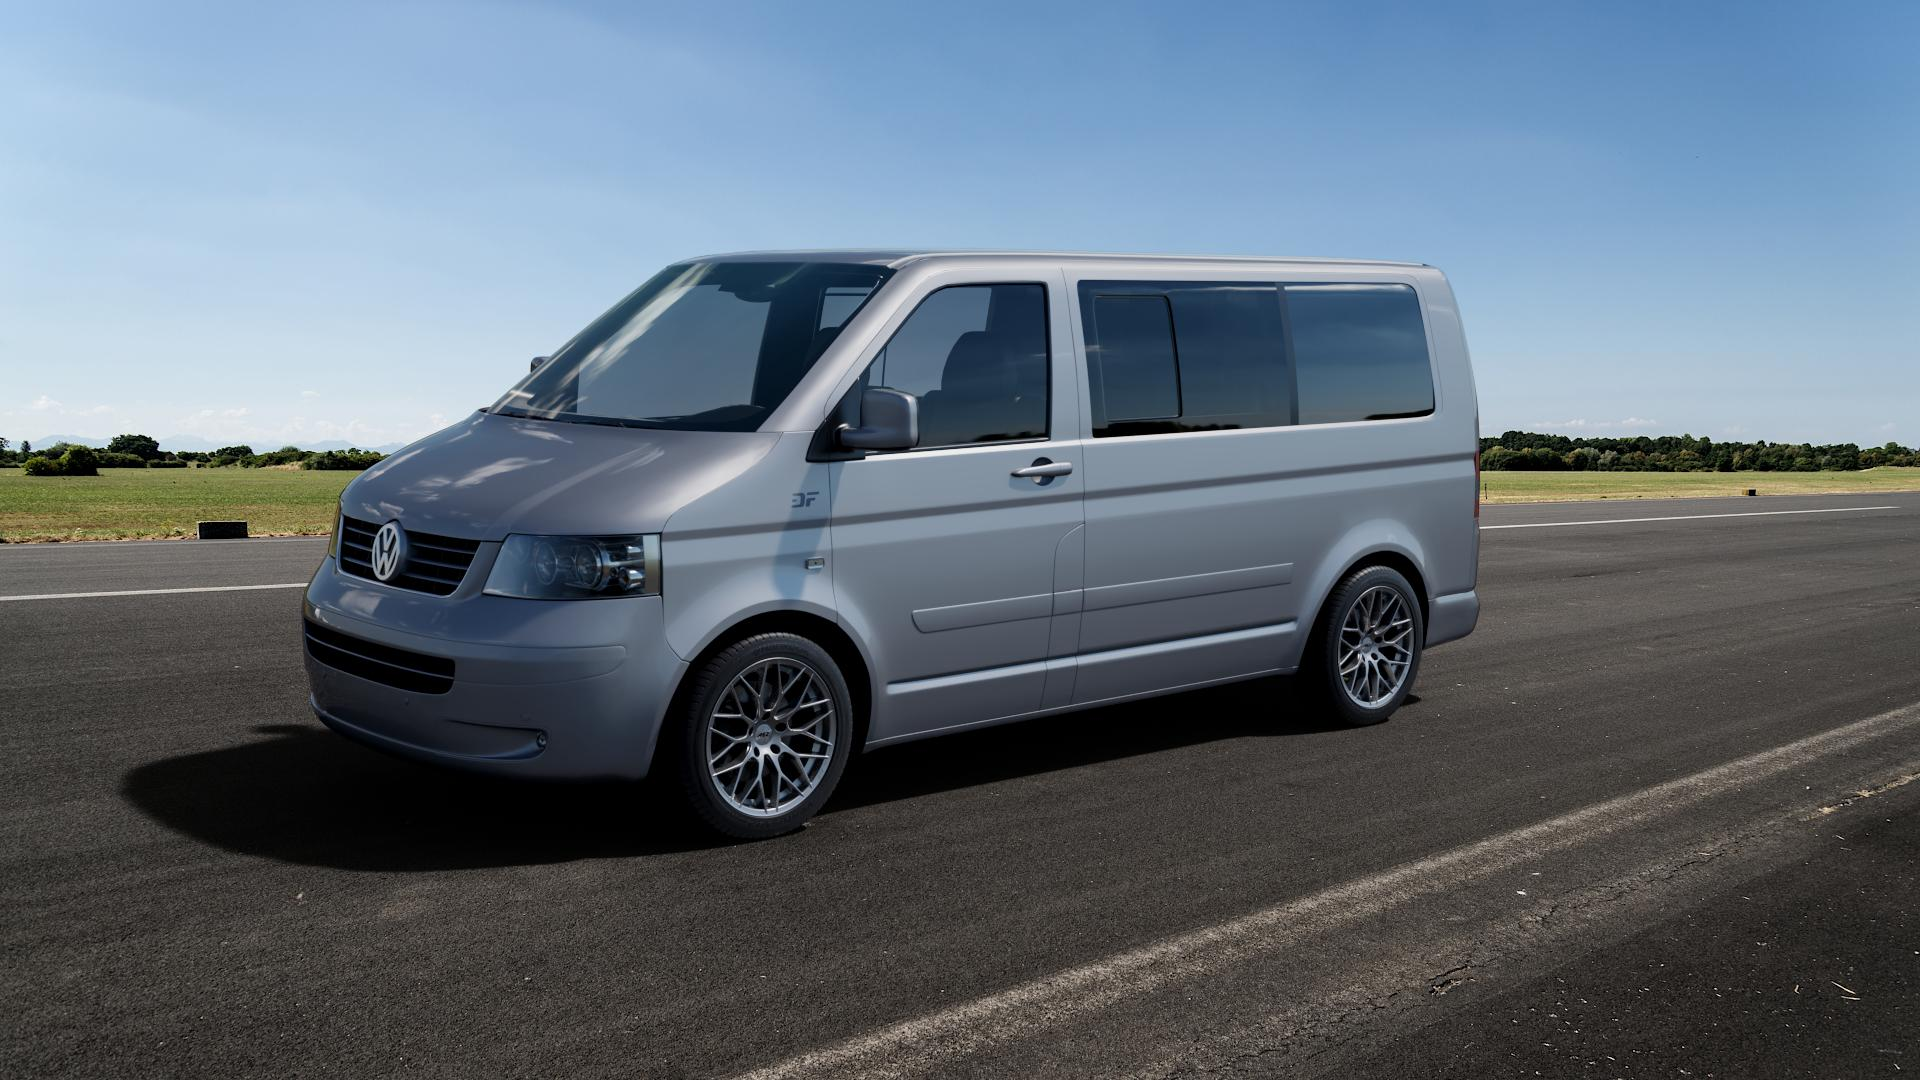 AEZ Antigua High gloss Felge mit Reifen silber in 18Zoll Winterfelge Alufelge auf silbernem Volkswagen (VW) T5 Business California Caravelle Kombi Multivan ⬇️ mit 15mm Tieferlegung ⬇️ Big_Vehicle_Airstrip_1 Frontansicht_1